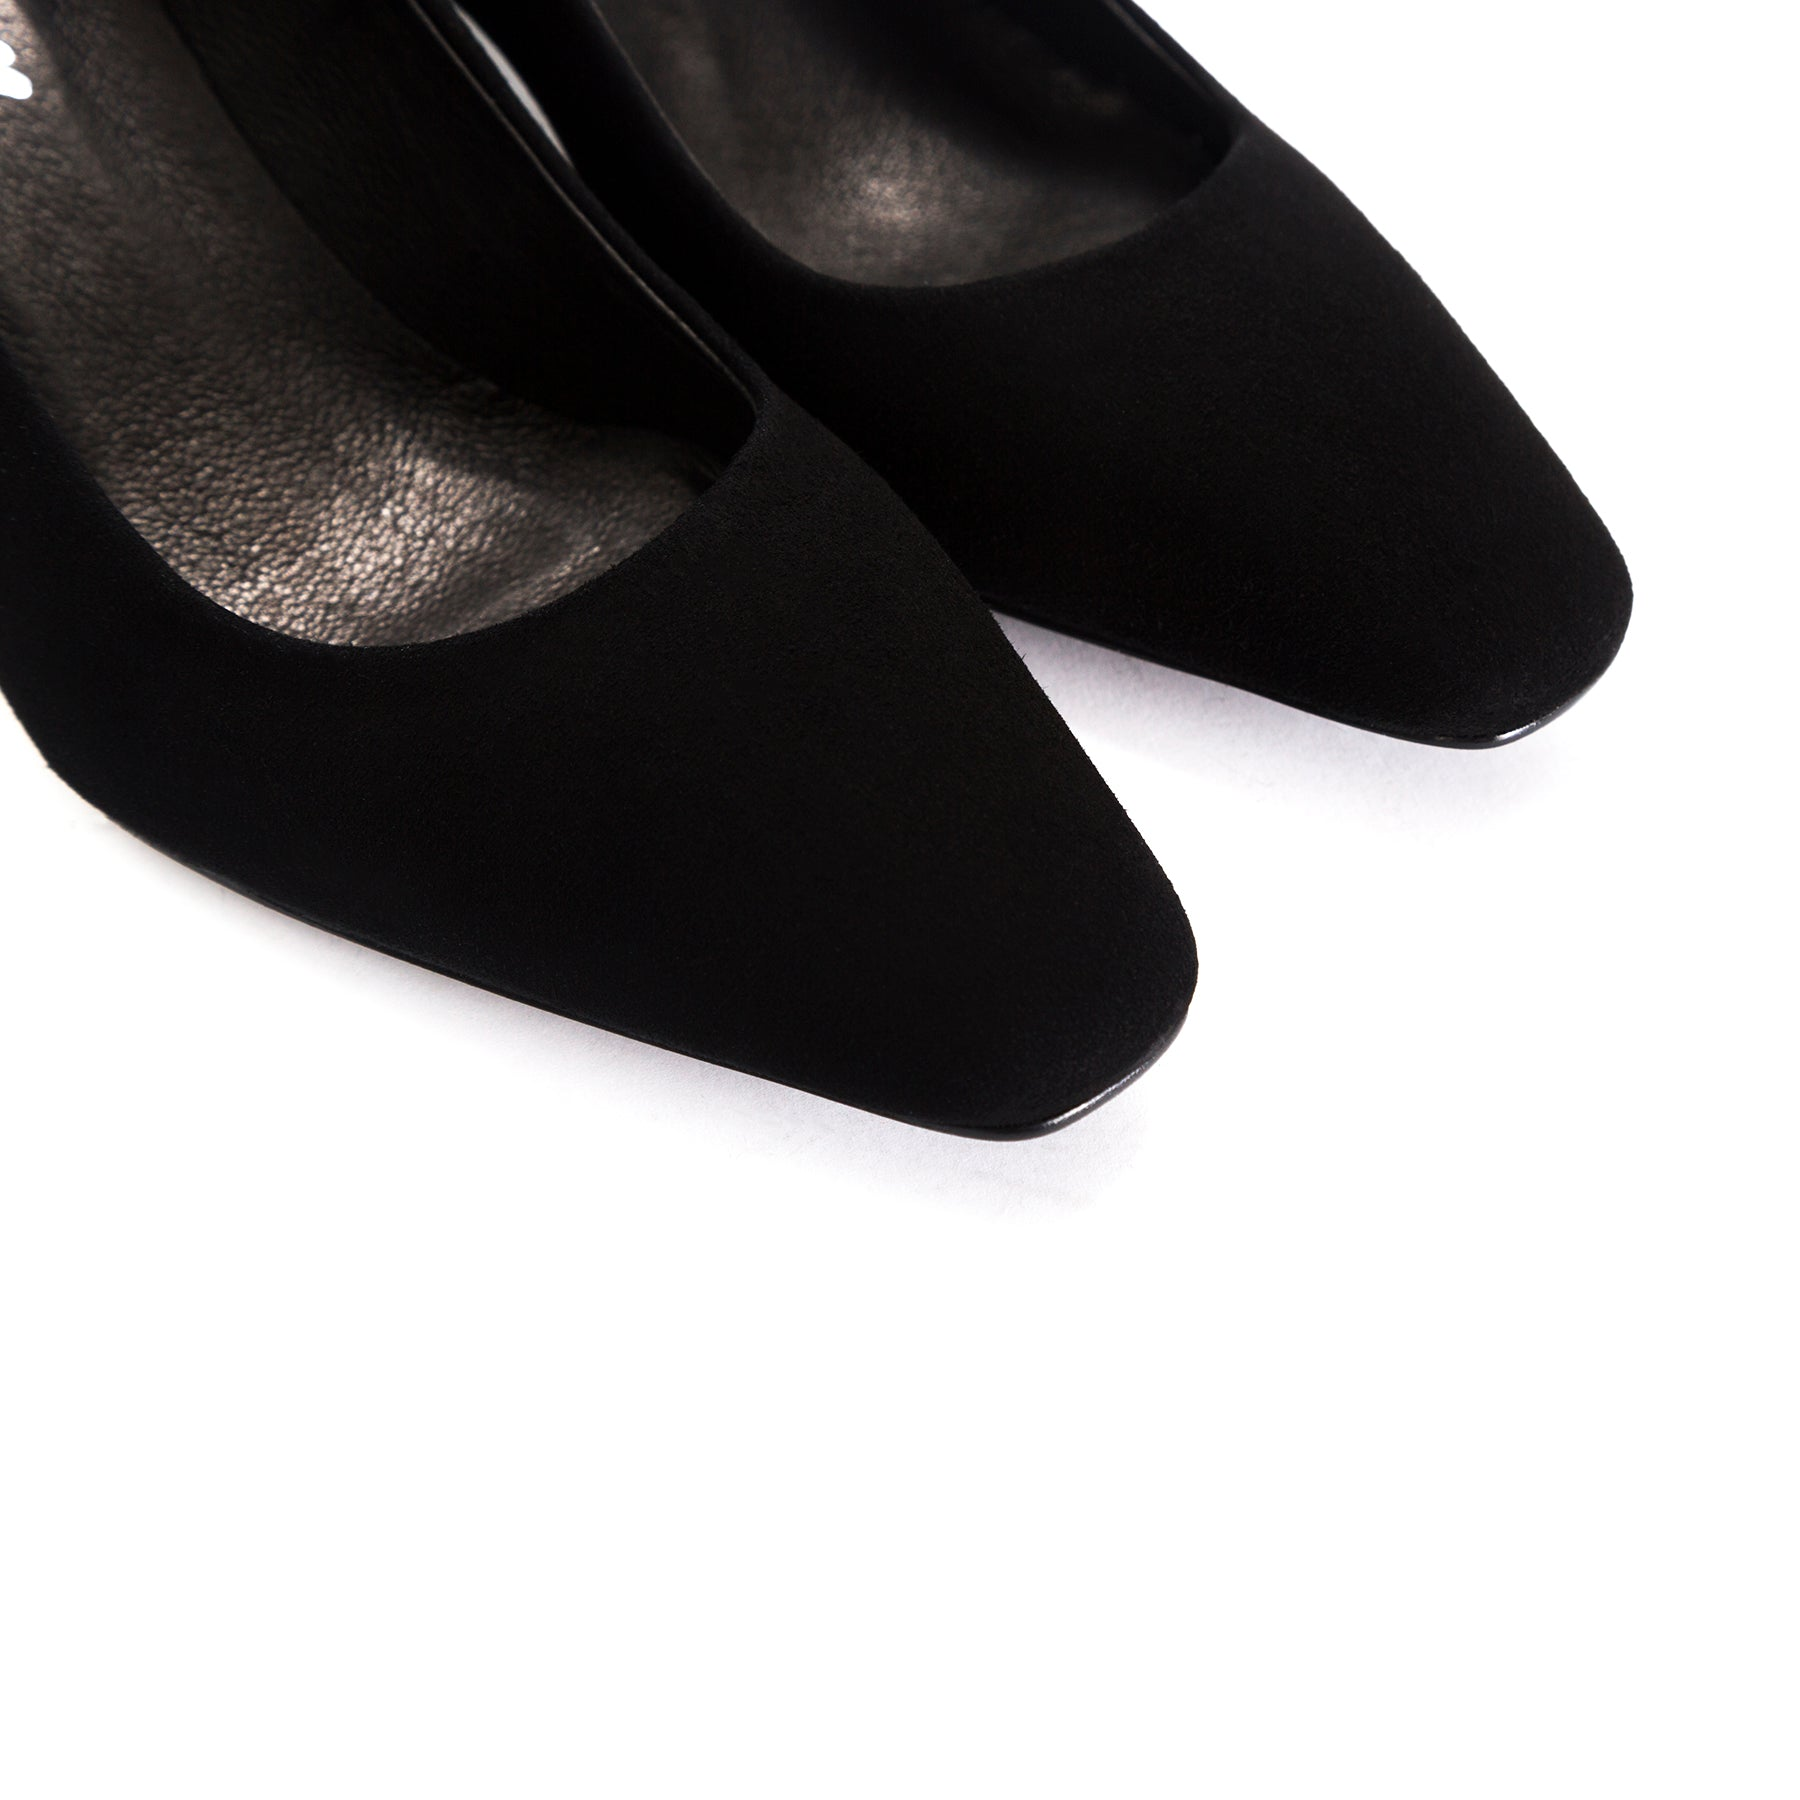 Betheney Black Suede Shoes